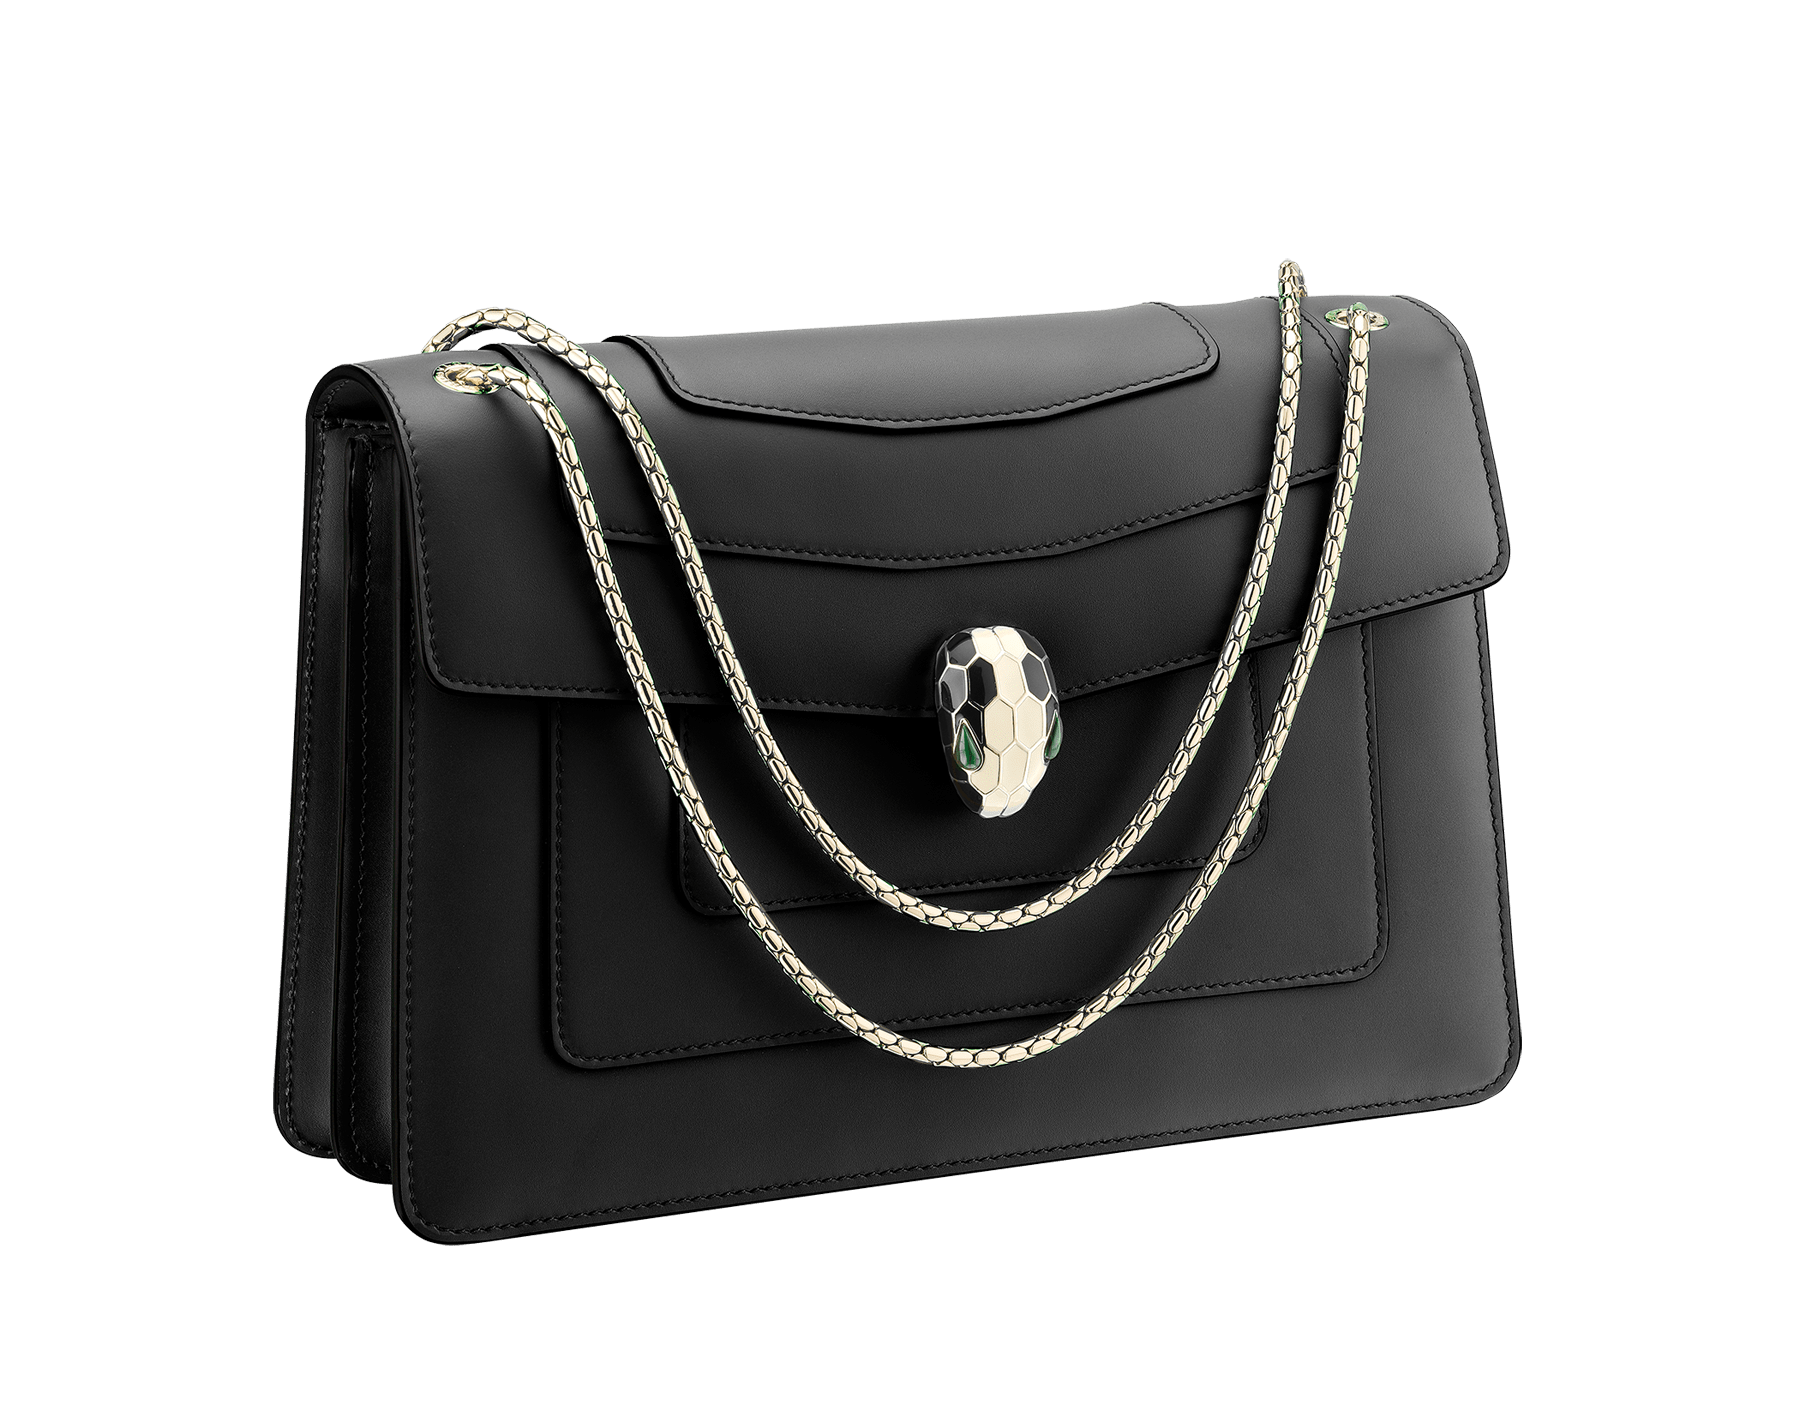 Black calf leather shoulder bag with brass light gold plated black and white enamel Serpenti head closure with malachite eyes. 35106 image 2